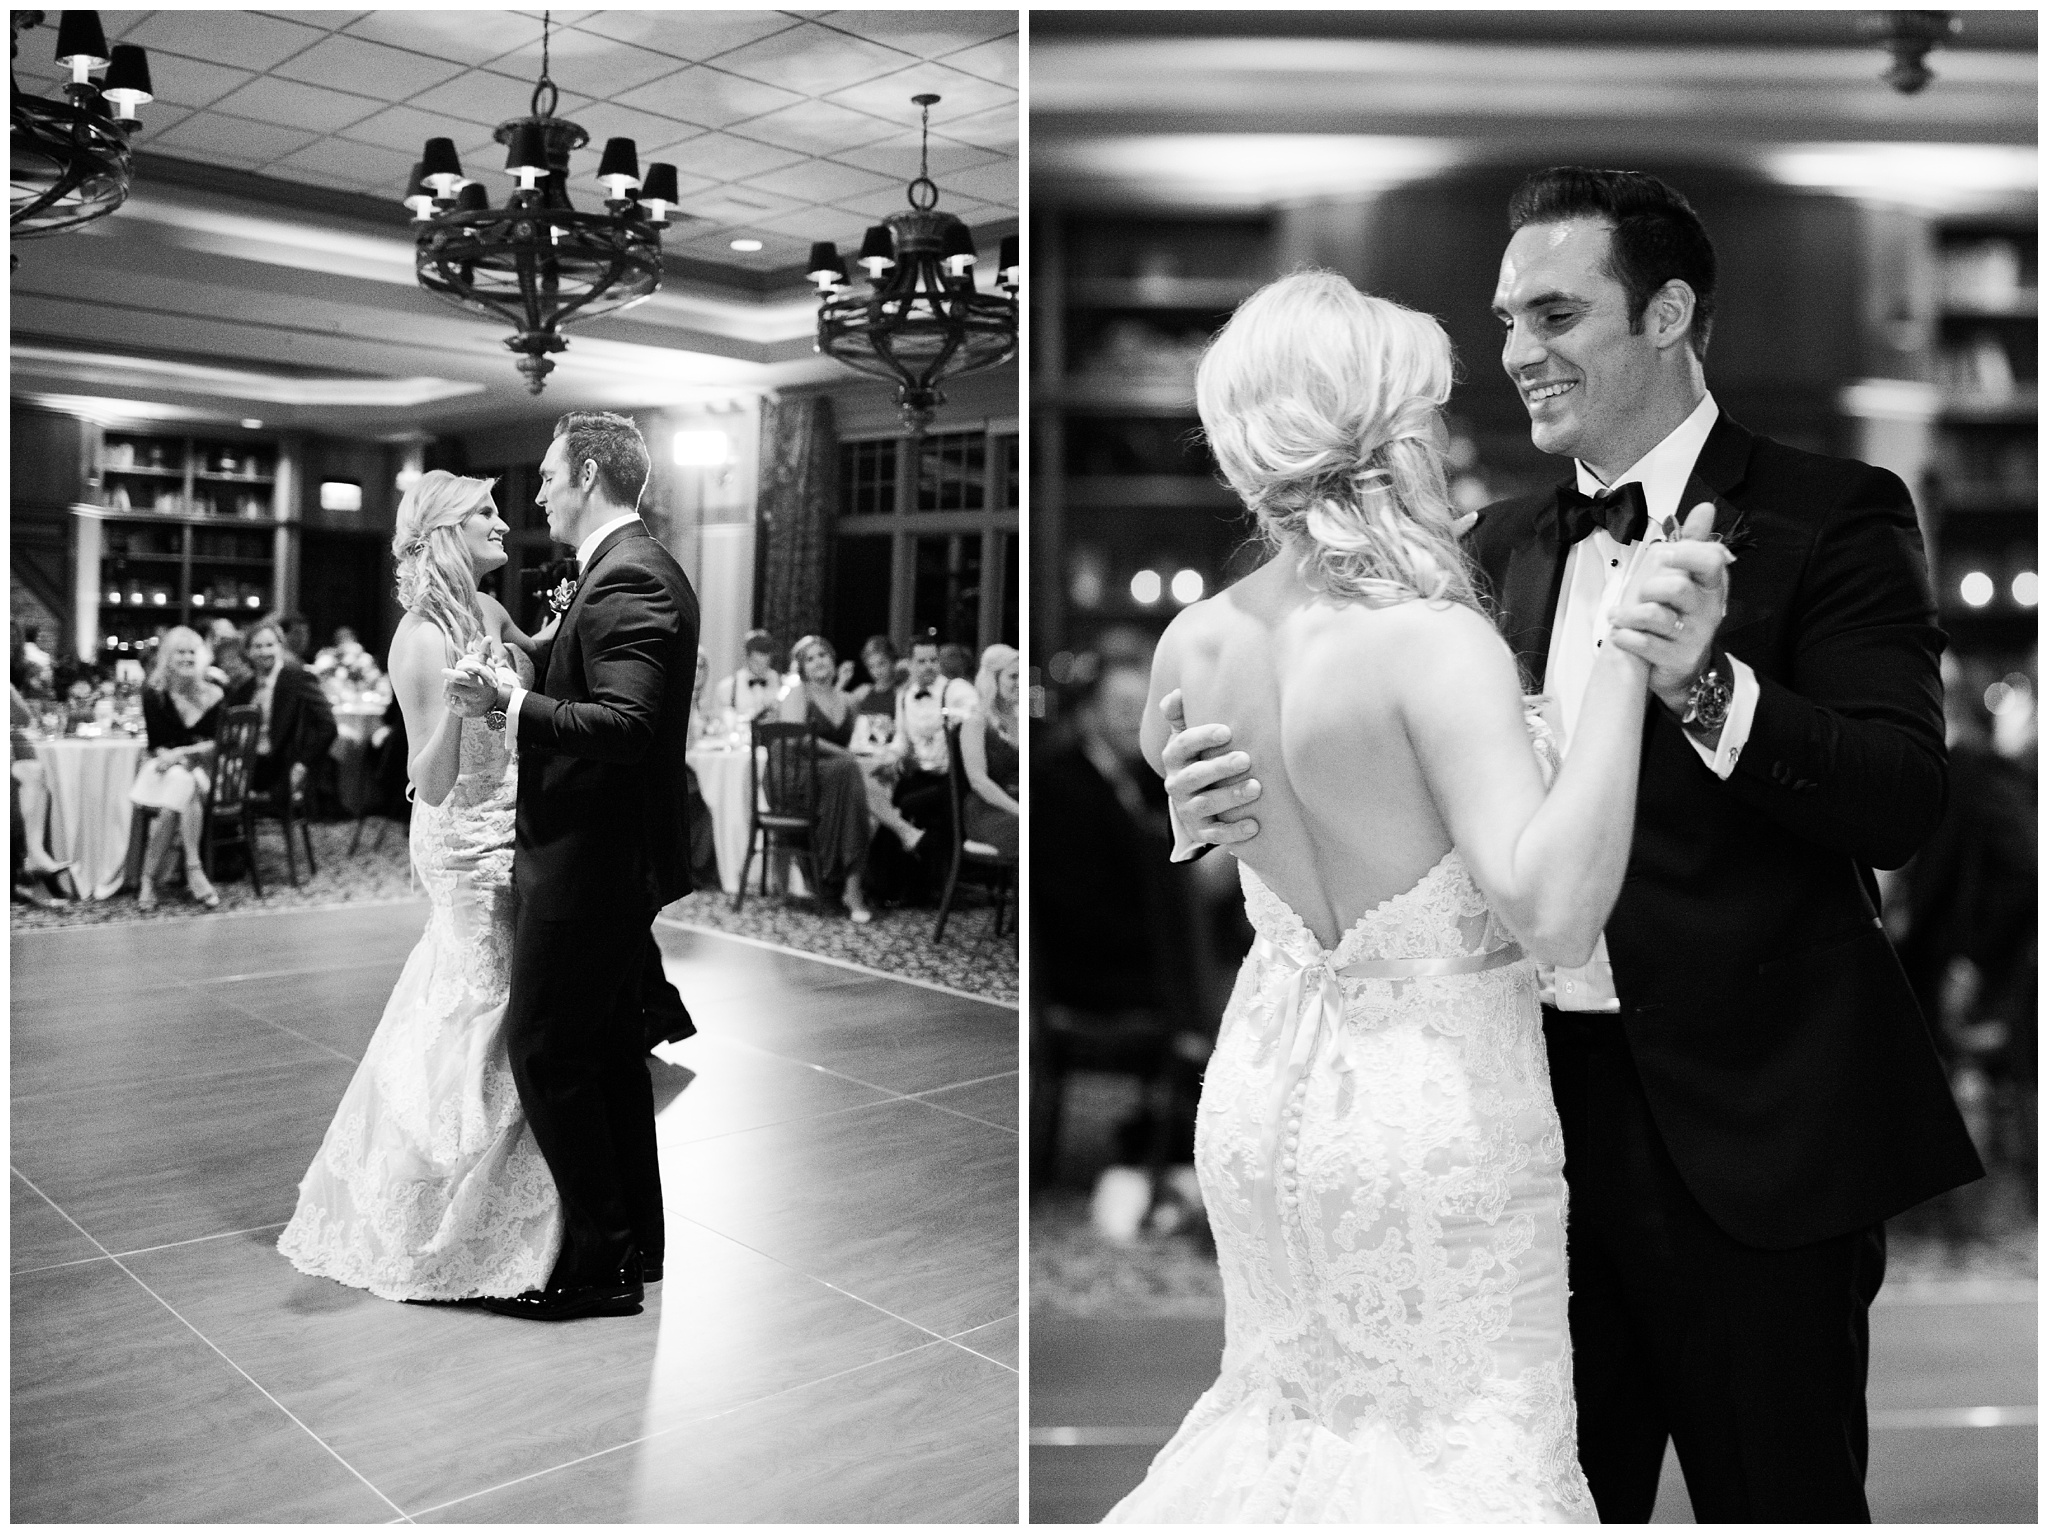 RebeccaHaleyPhotography_BarringtonPhotographer_ChicagoPhotographer_ChicagoWedding_0074.jpg